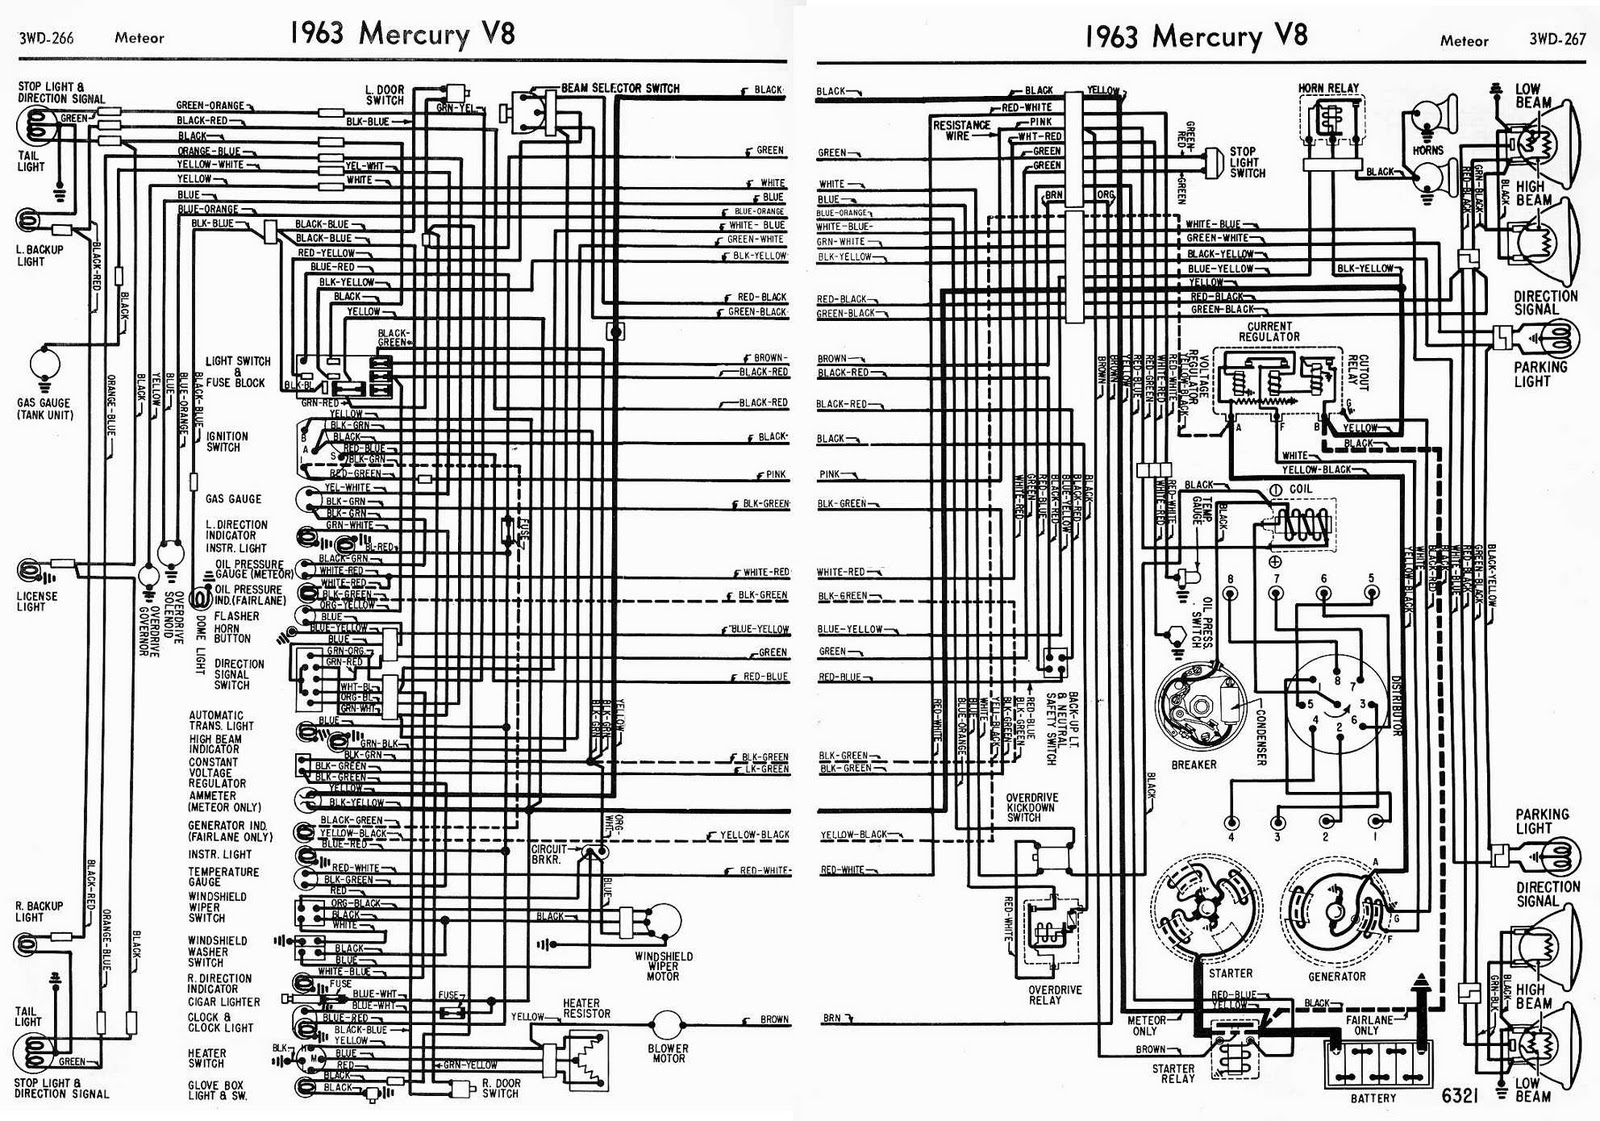 1963 galaxie wiring diagram list of schematic circuit diagram u2022 galaxie dash wiring 1967 ford [ 1600 x 1121 Pixel ]